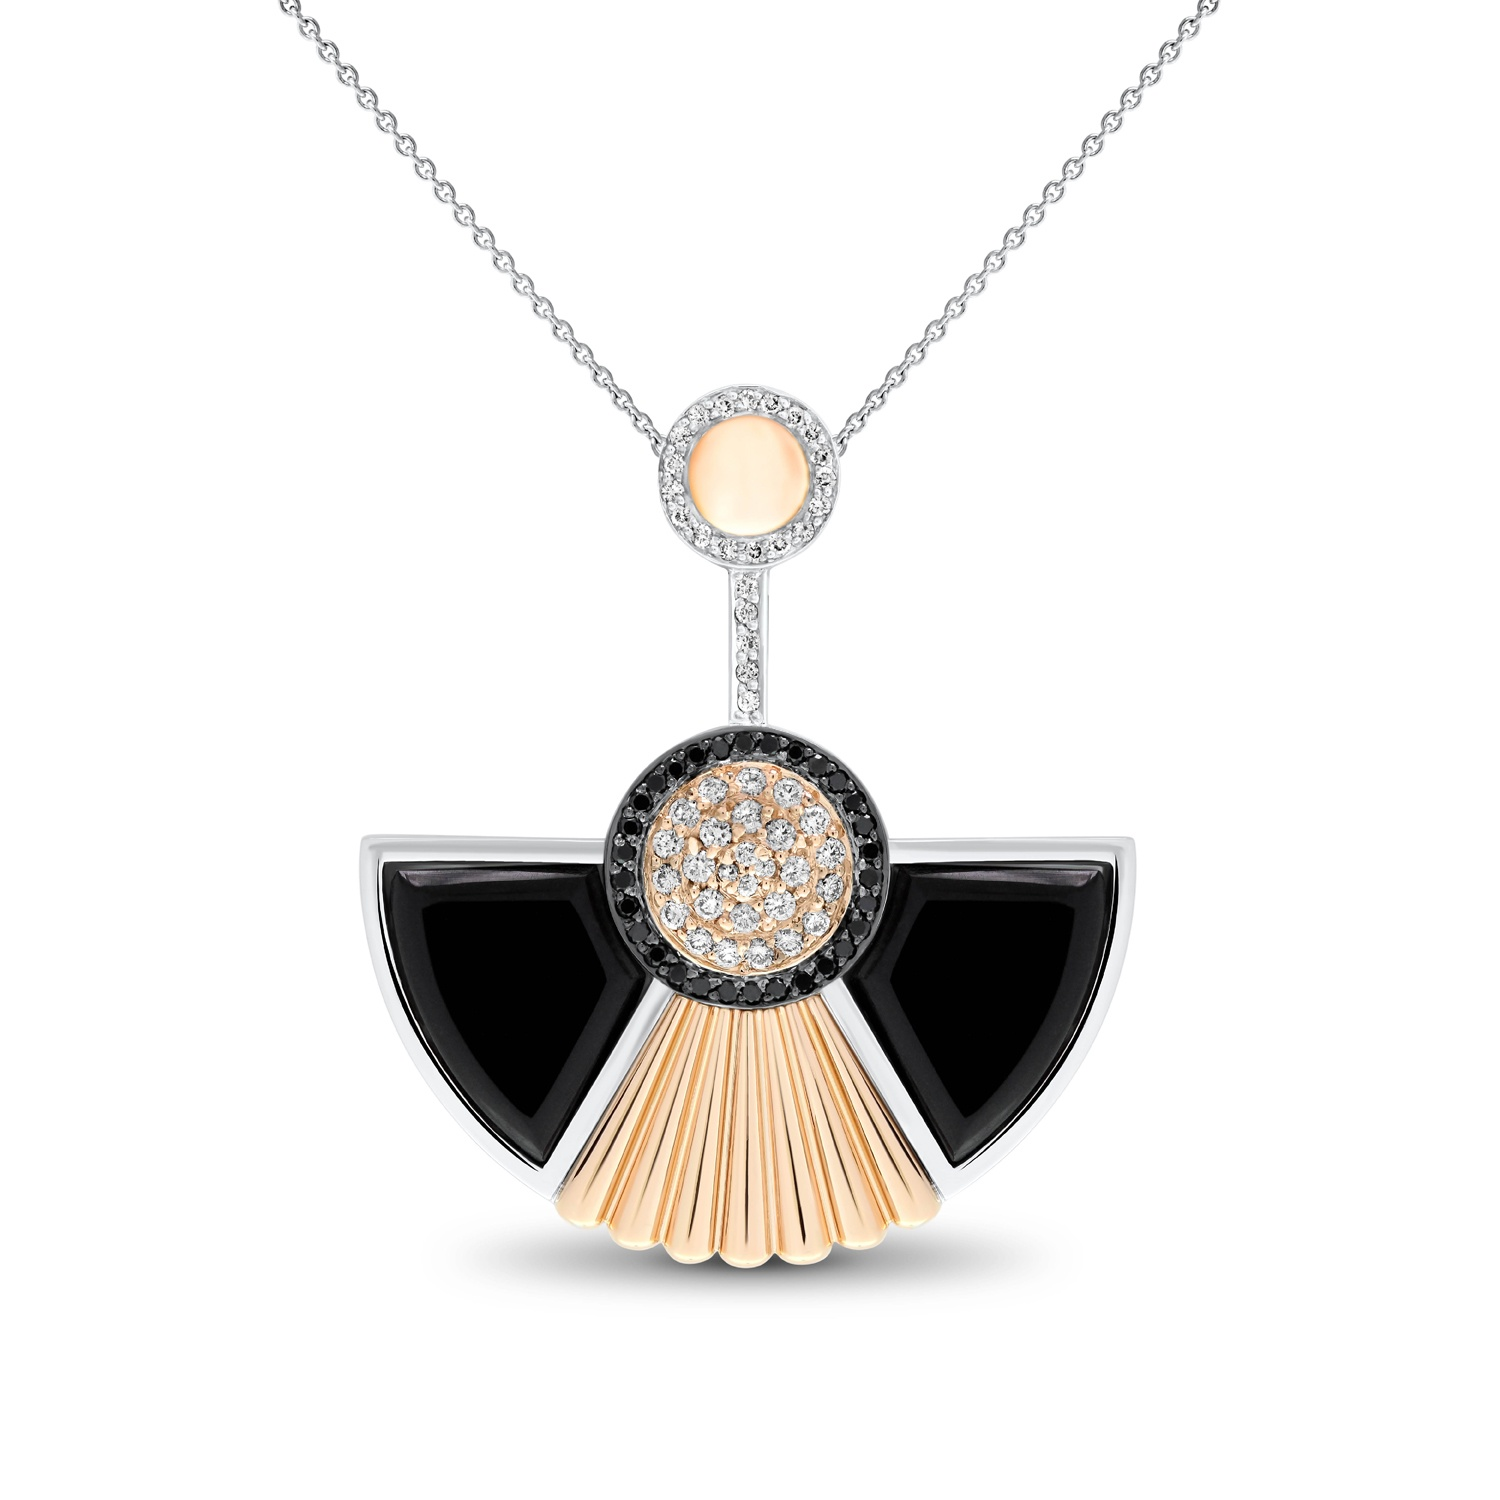 Art Deco Style Cleopatra Pendant In 18k White And Rose Gold By Fairfax Roberts